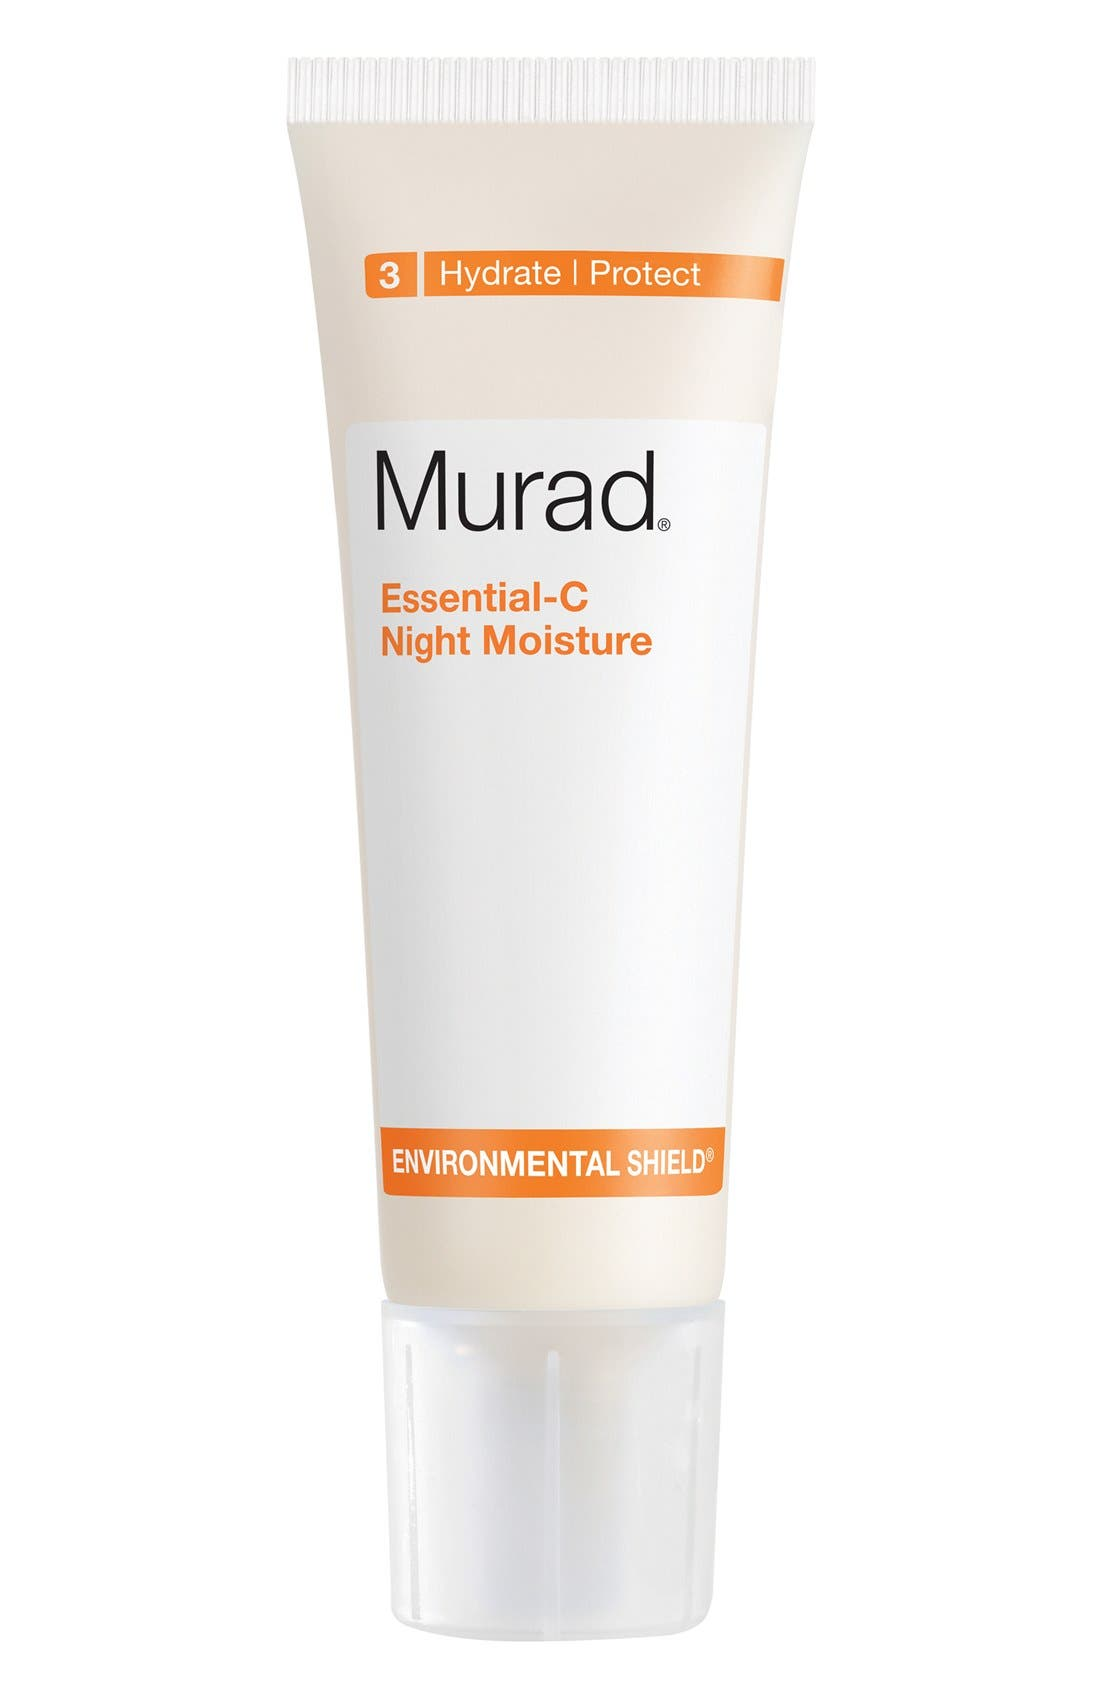 Murad® Essential-C Night Moisture